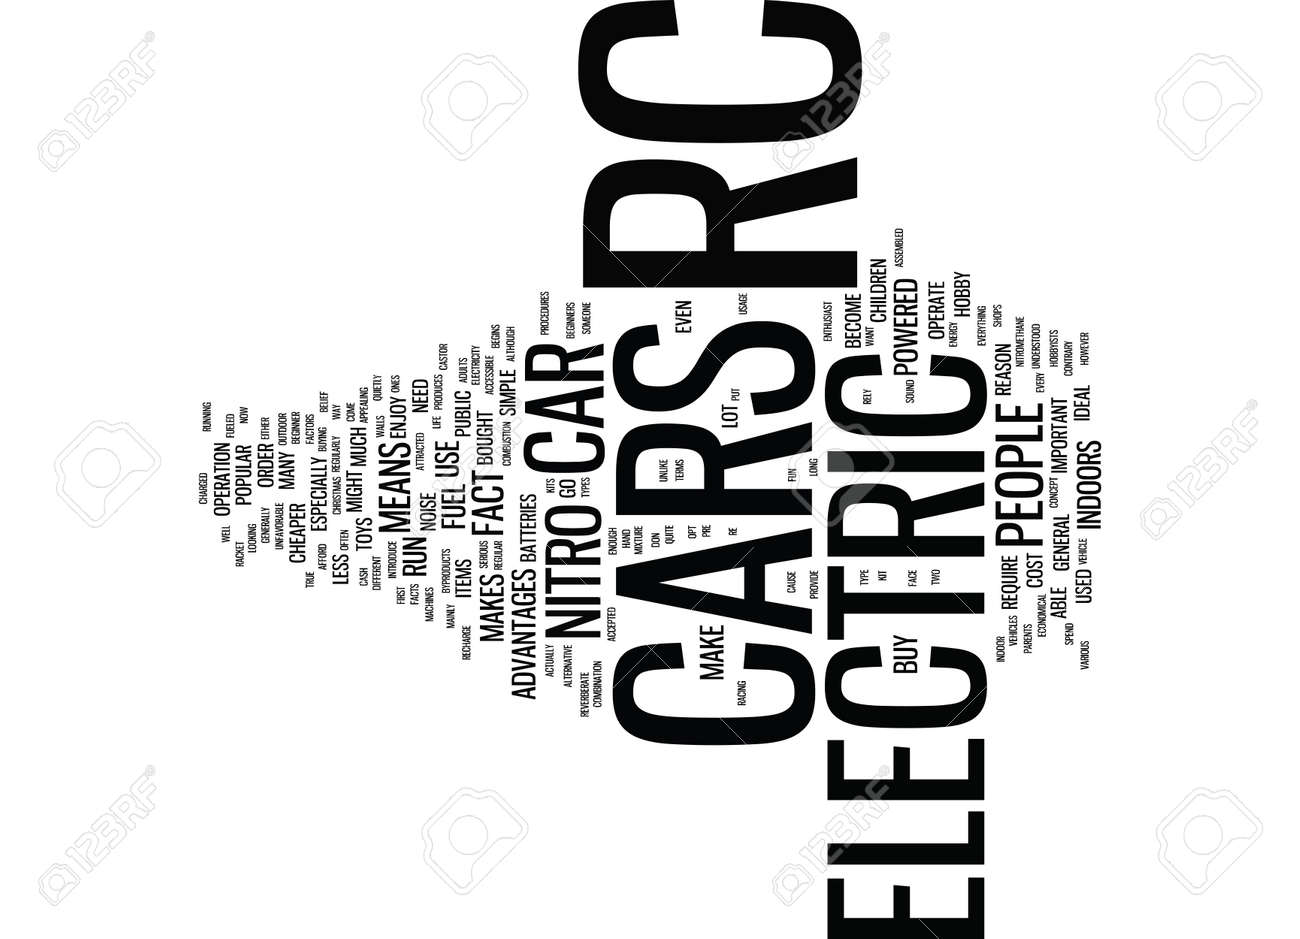 electric rc car text background word cloud concept royalty free simple car diagram electric rc car text background word cloud concept stock vector 82598865